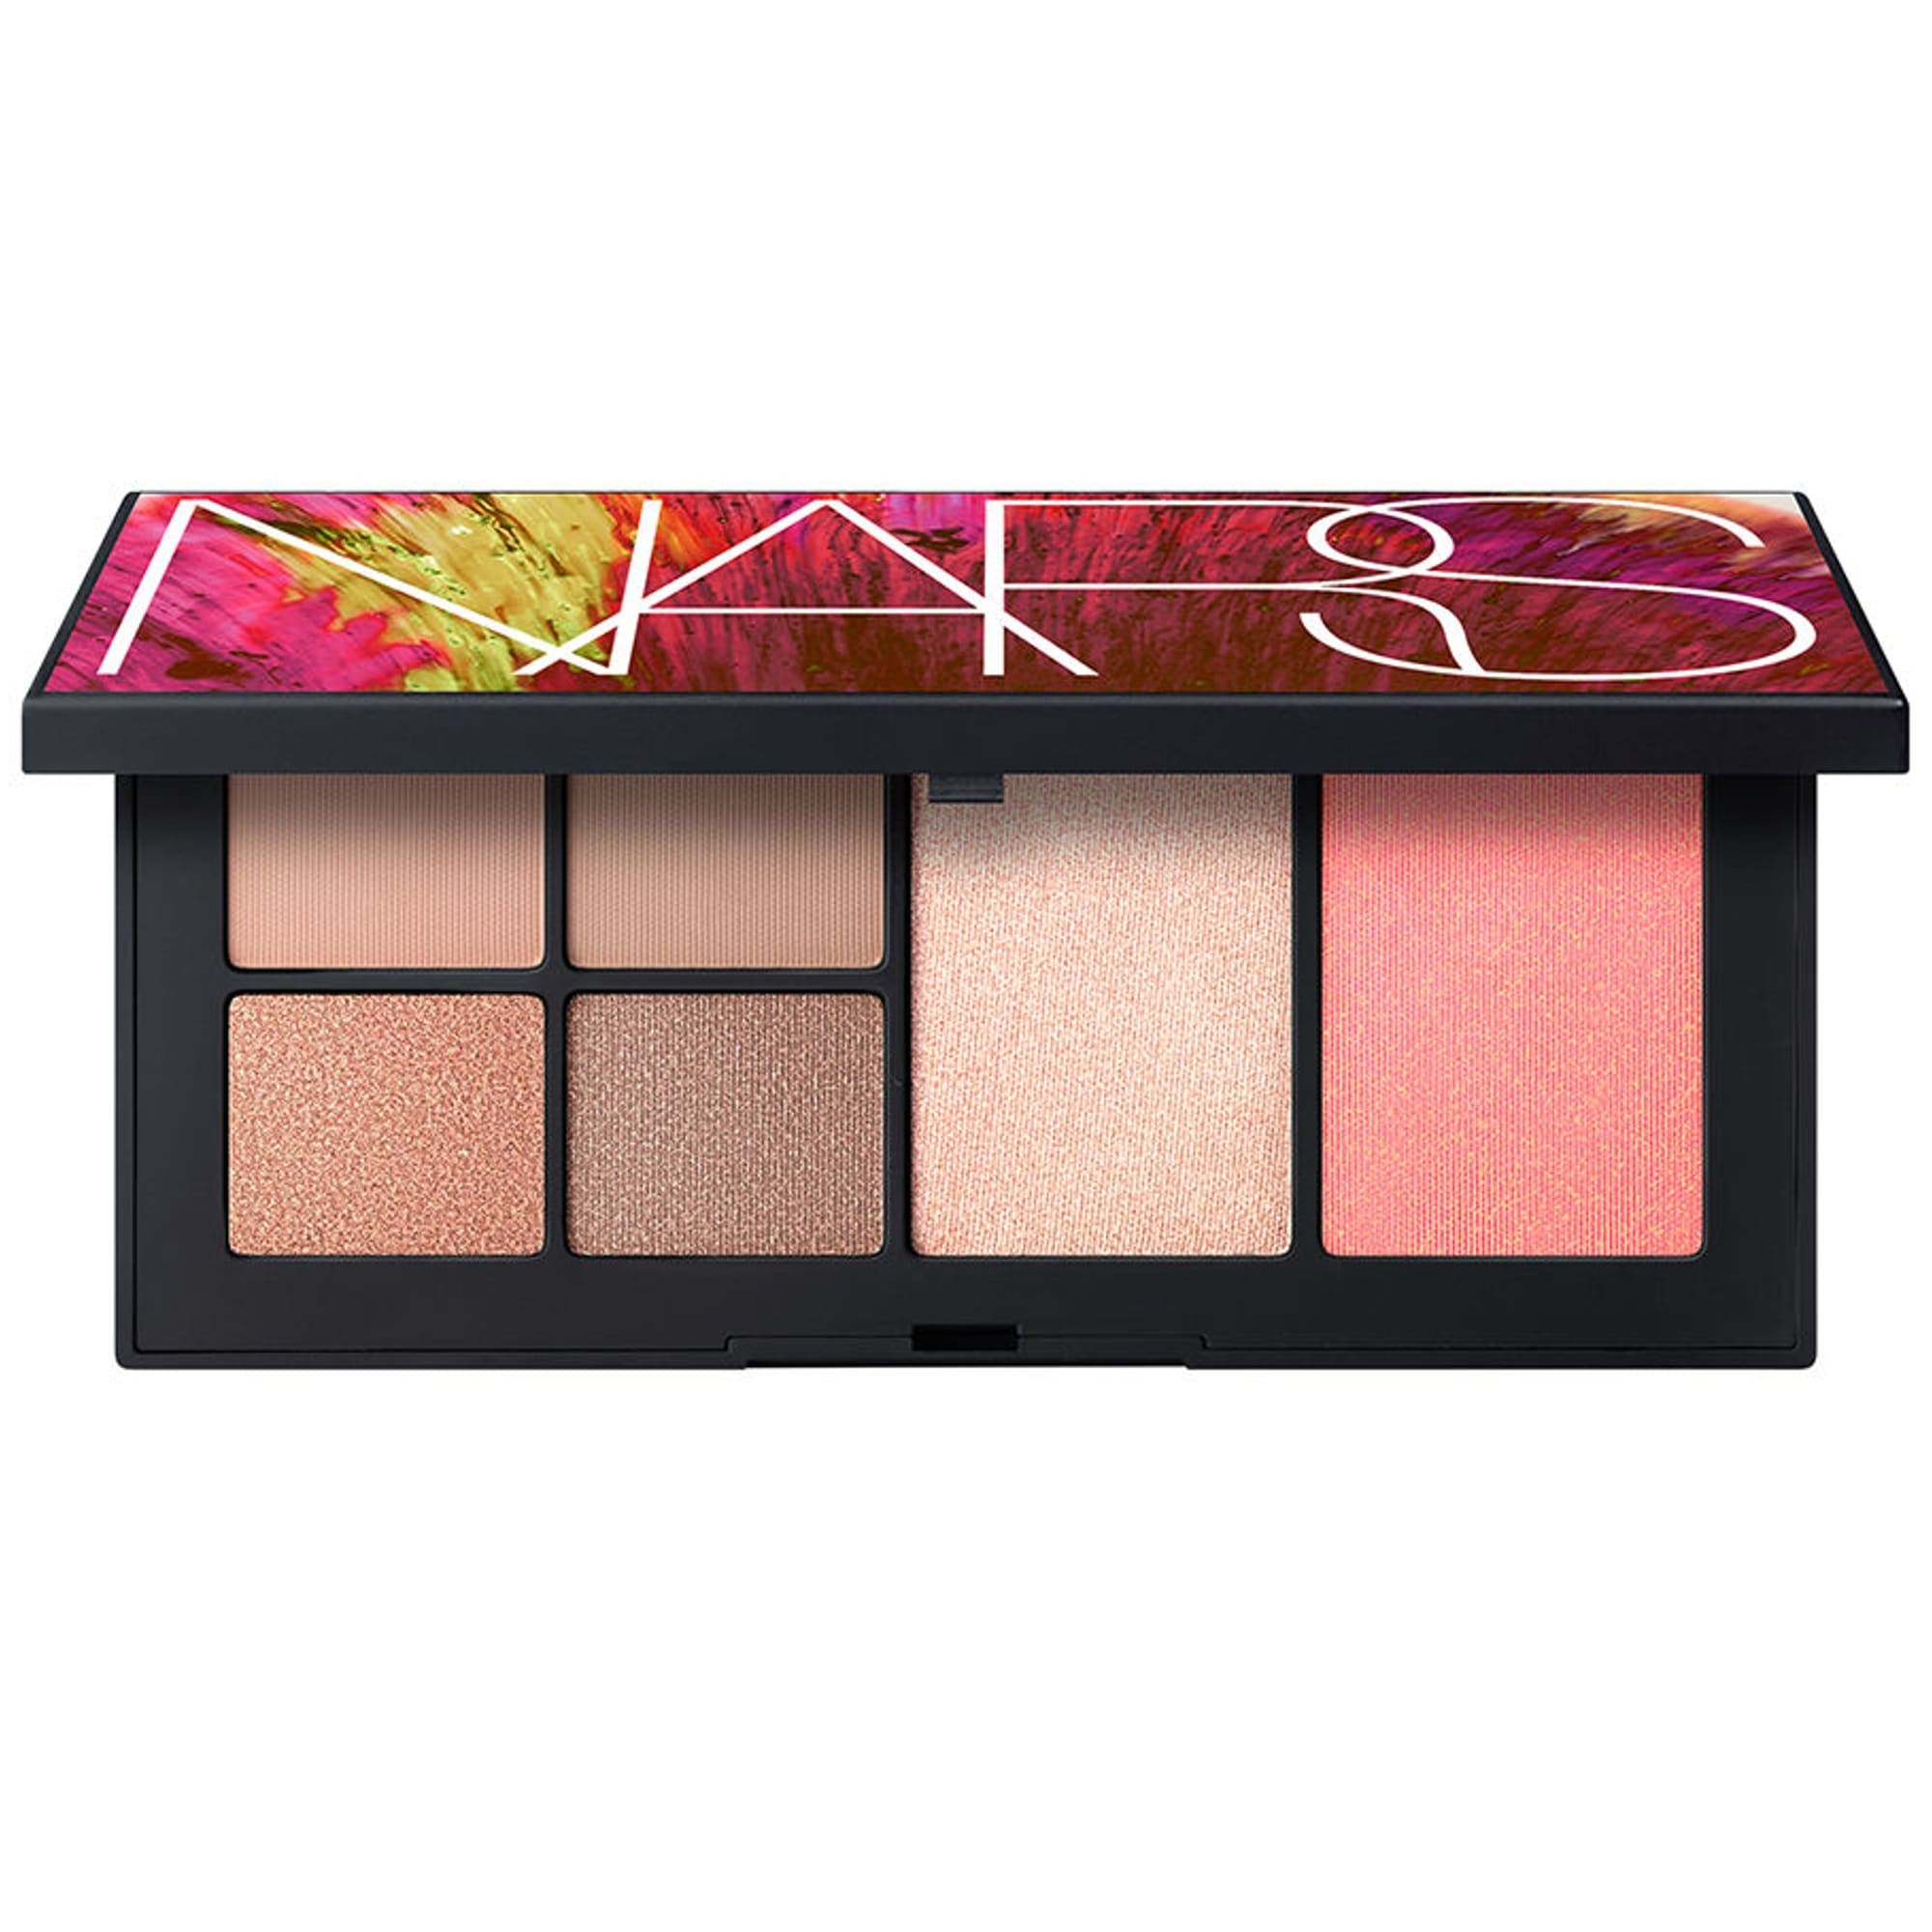 Nars Lost in Luster Face Palette